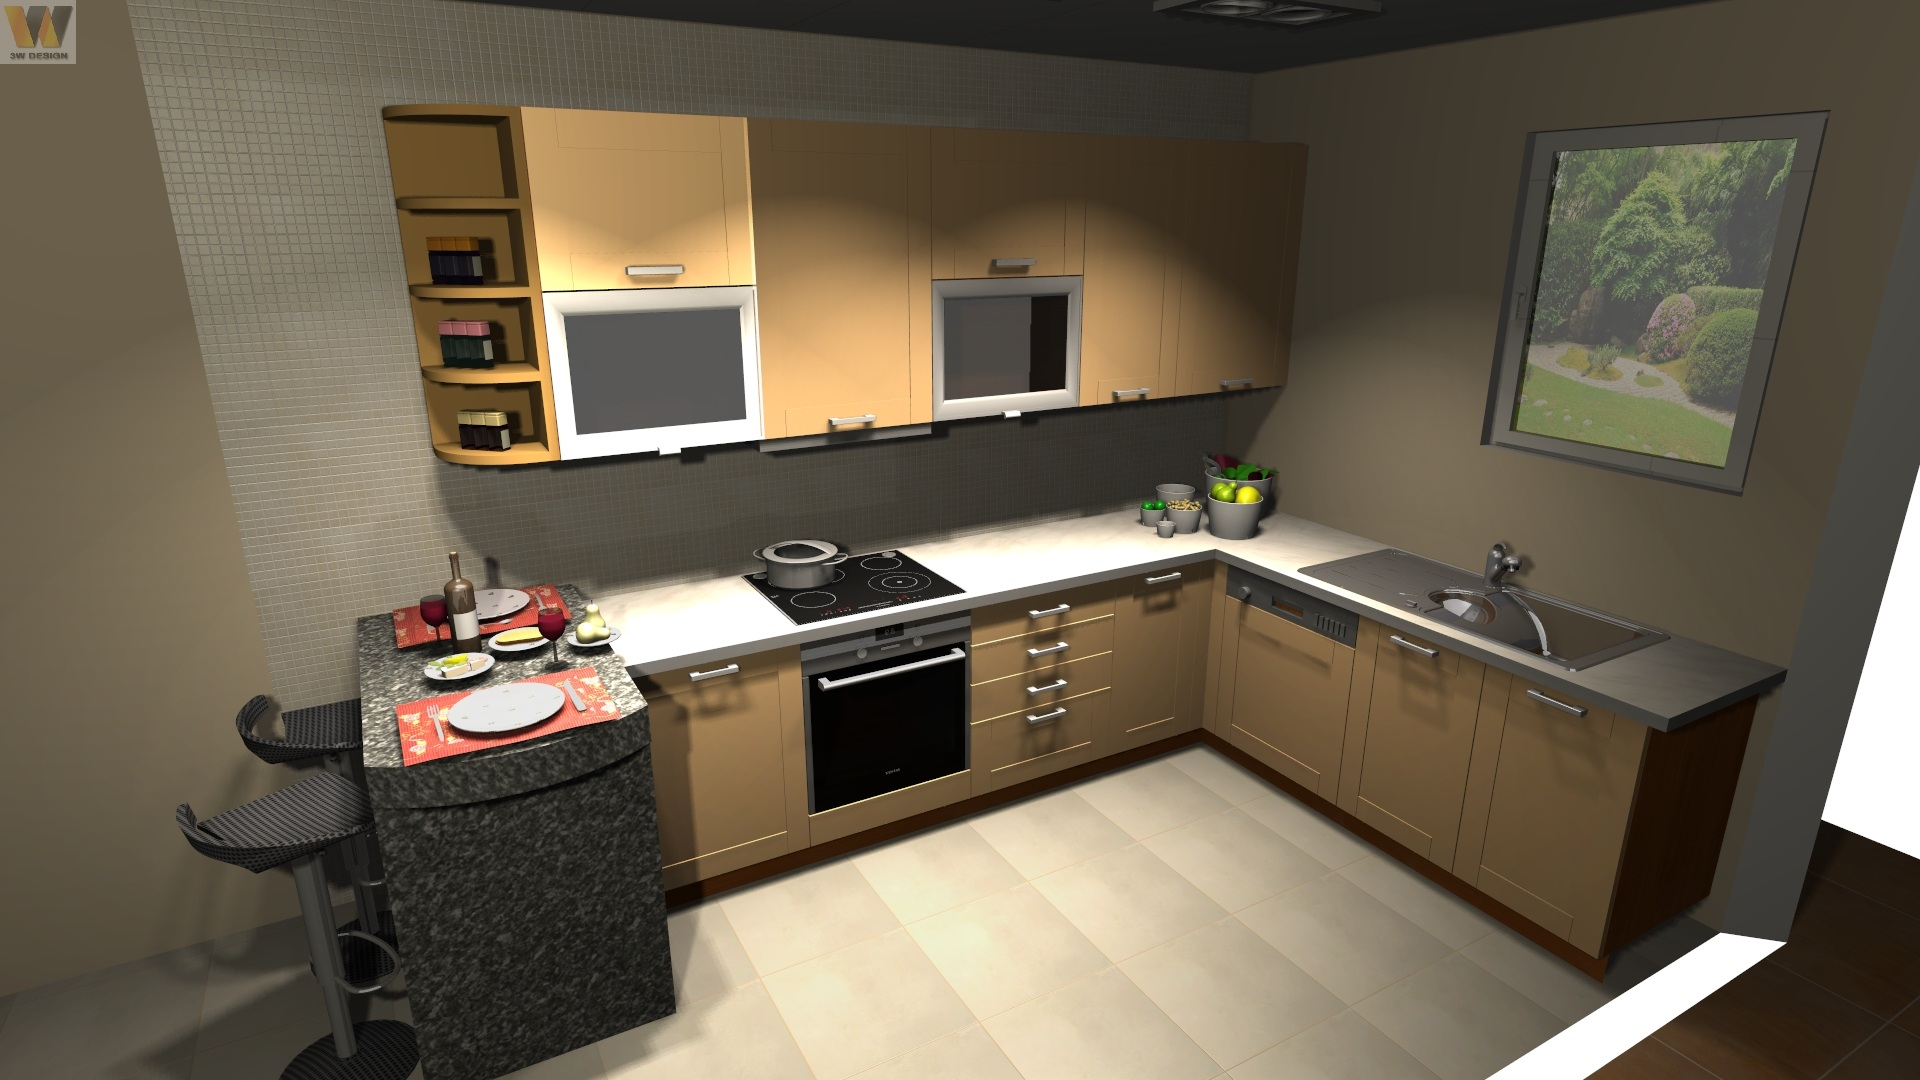 image - 5 Kitchen Redesign Tips for a Functional, Yet Safe Kitchen